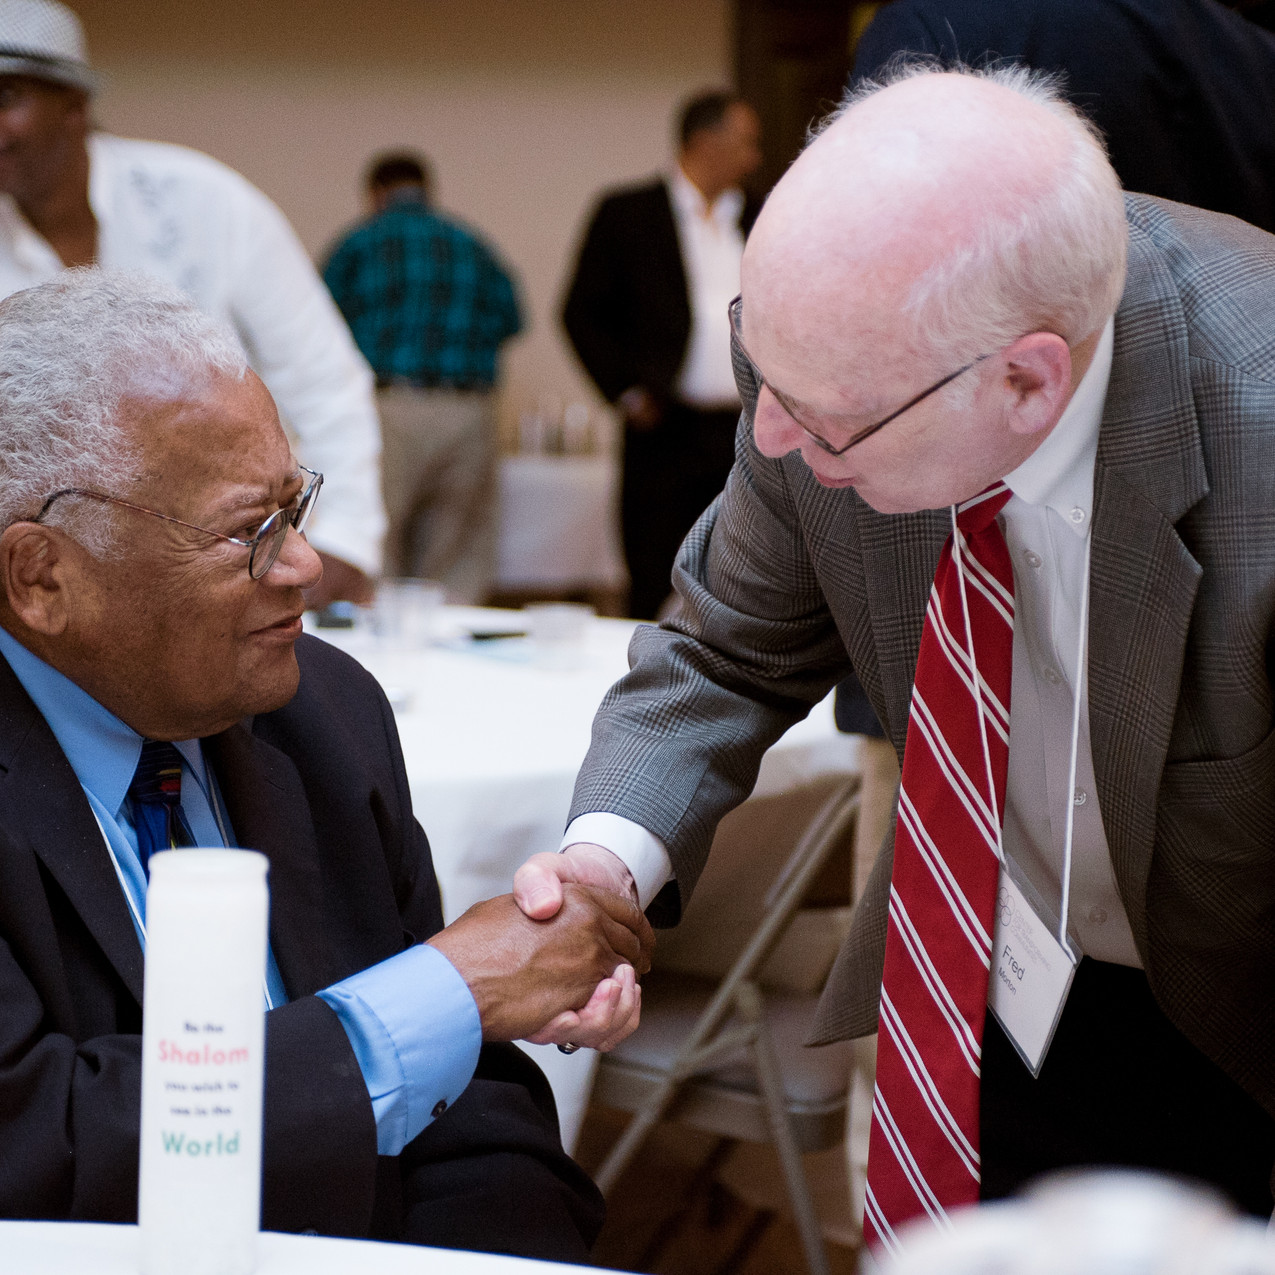 Fred Morton and James Lawson